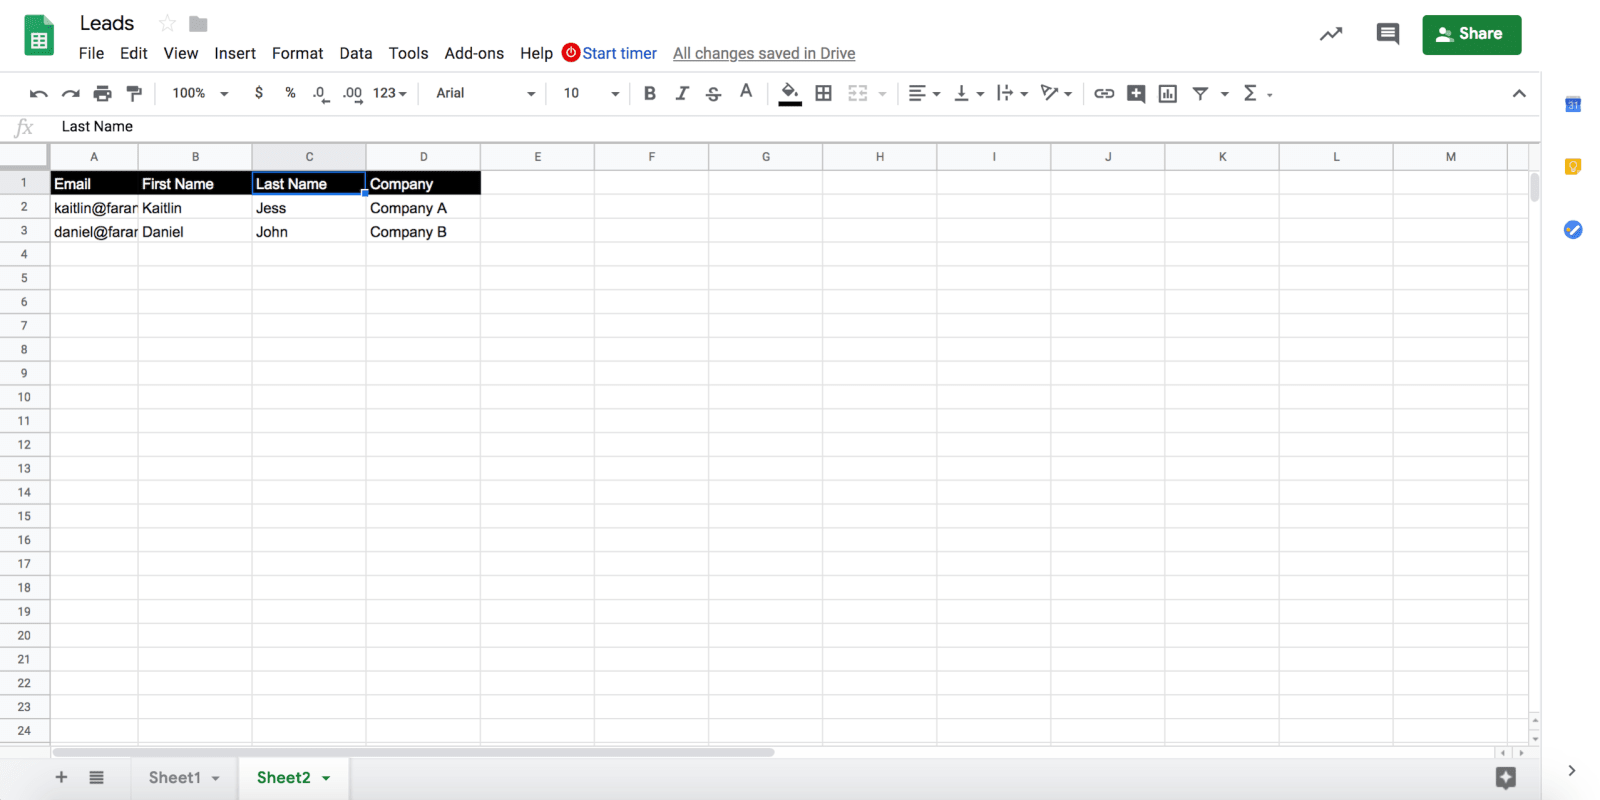 Mailshake Review Creating Leads Spreadsheet With Google Drive